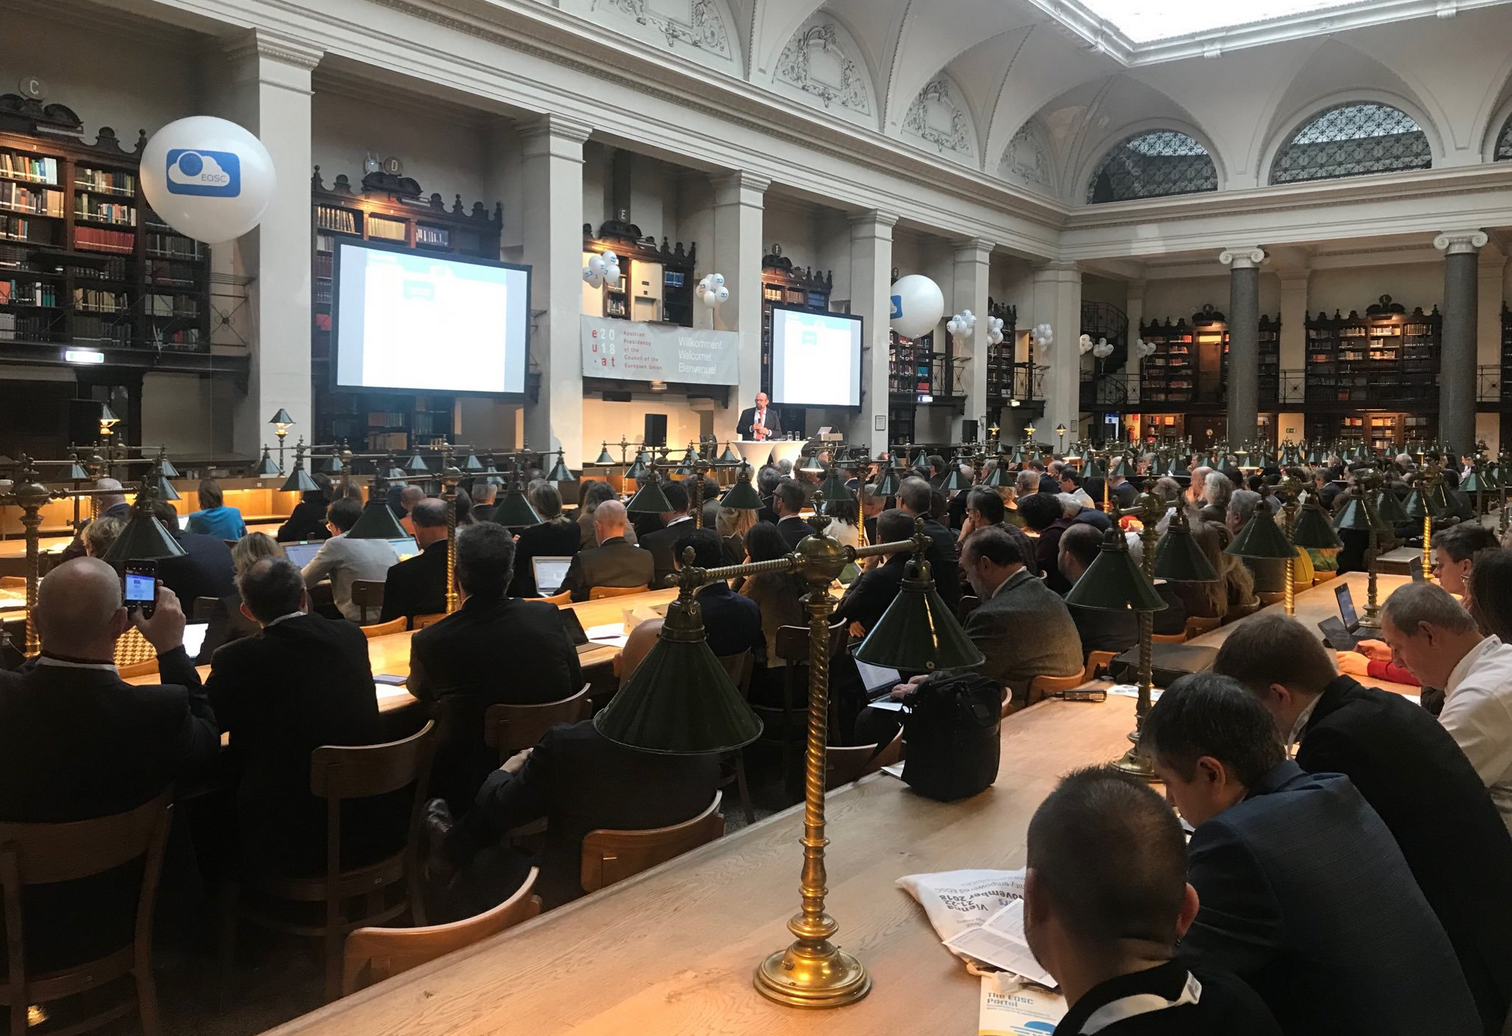 Plenary Session DAY 2 - The EOSC continues to evolve